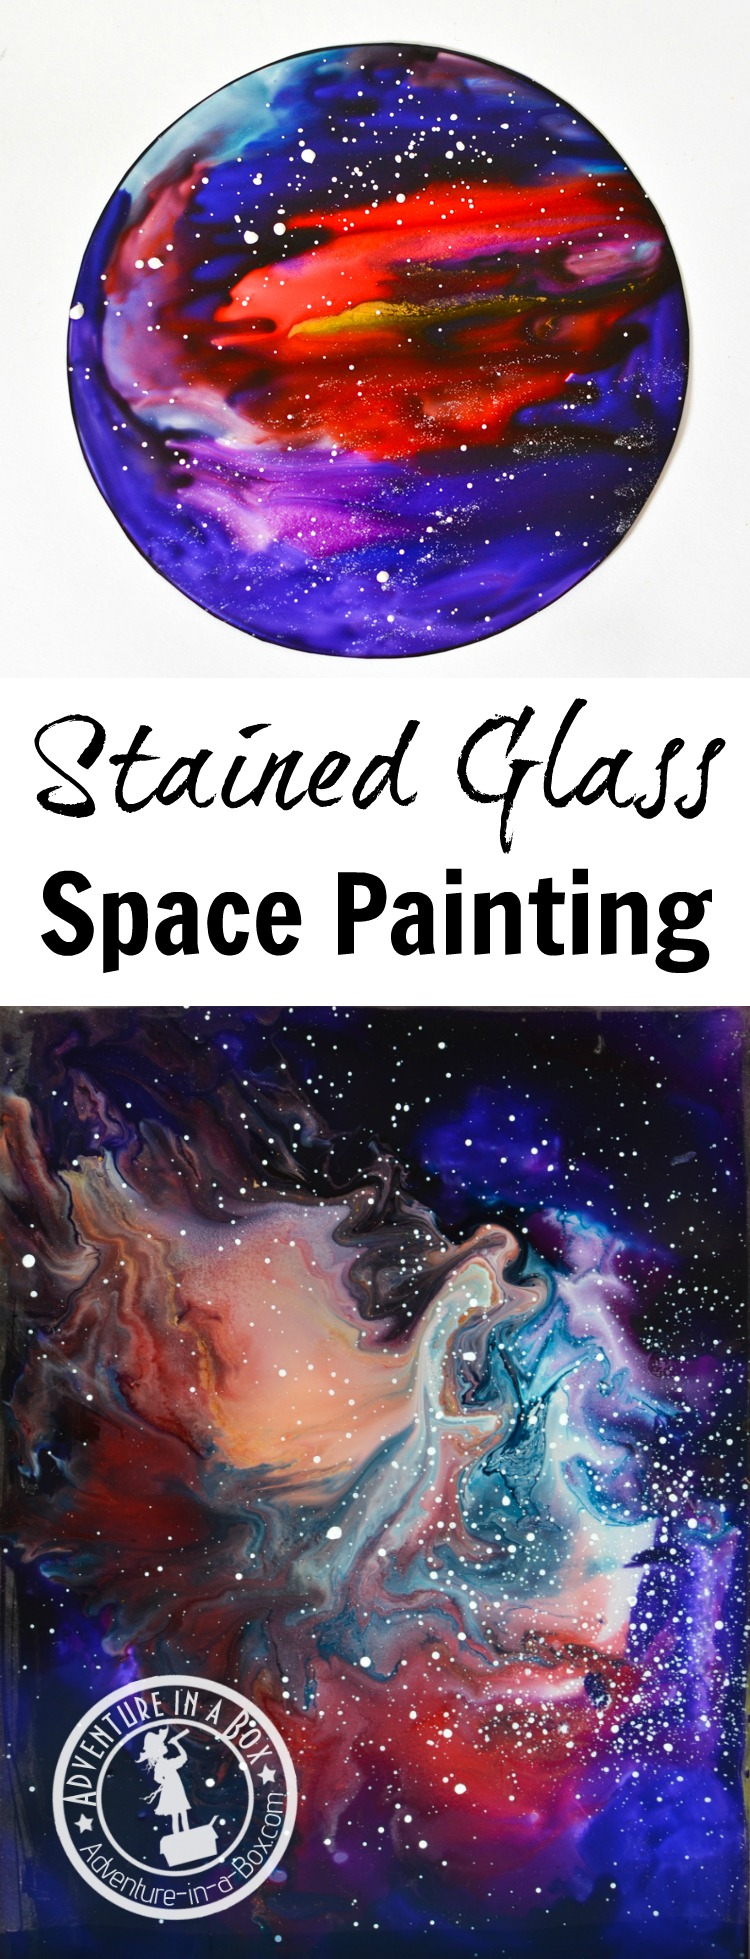 Stained Glass Space Painting Adventure In A Box